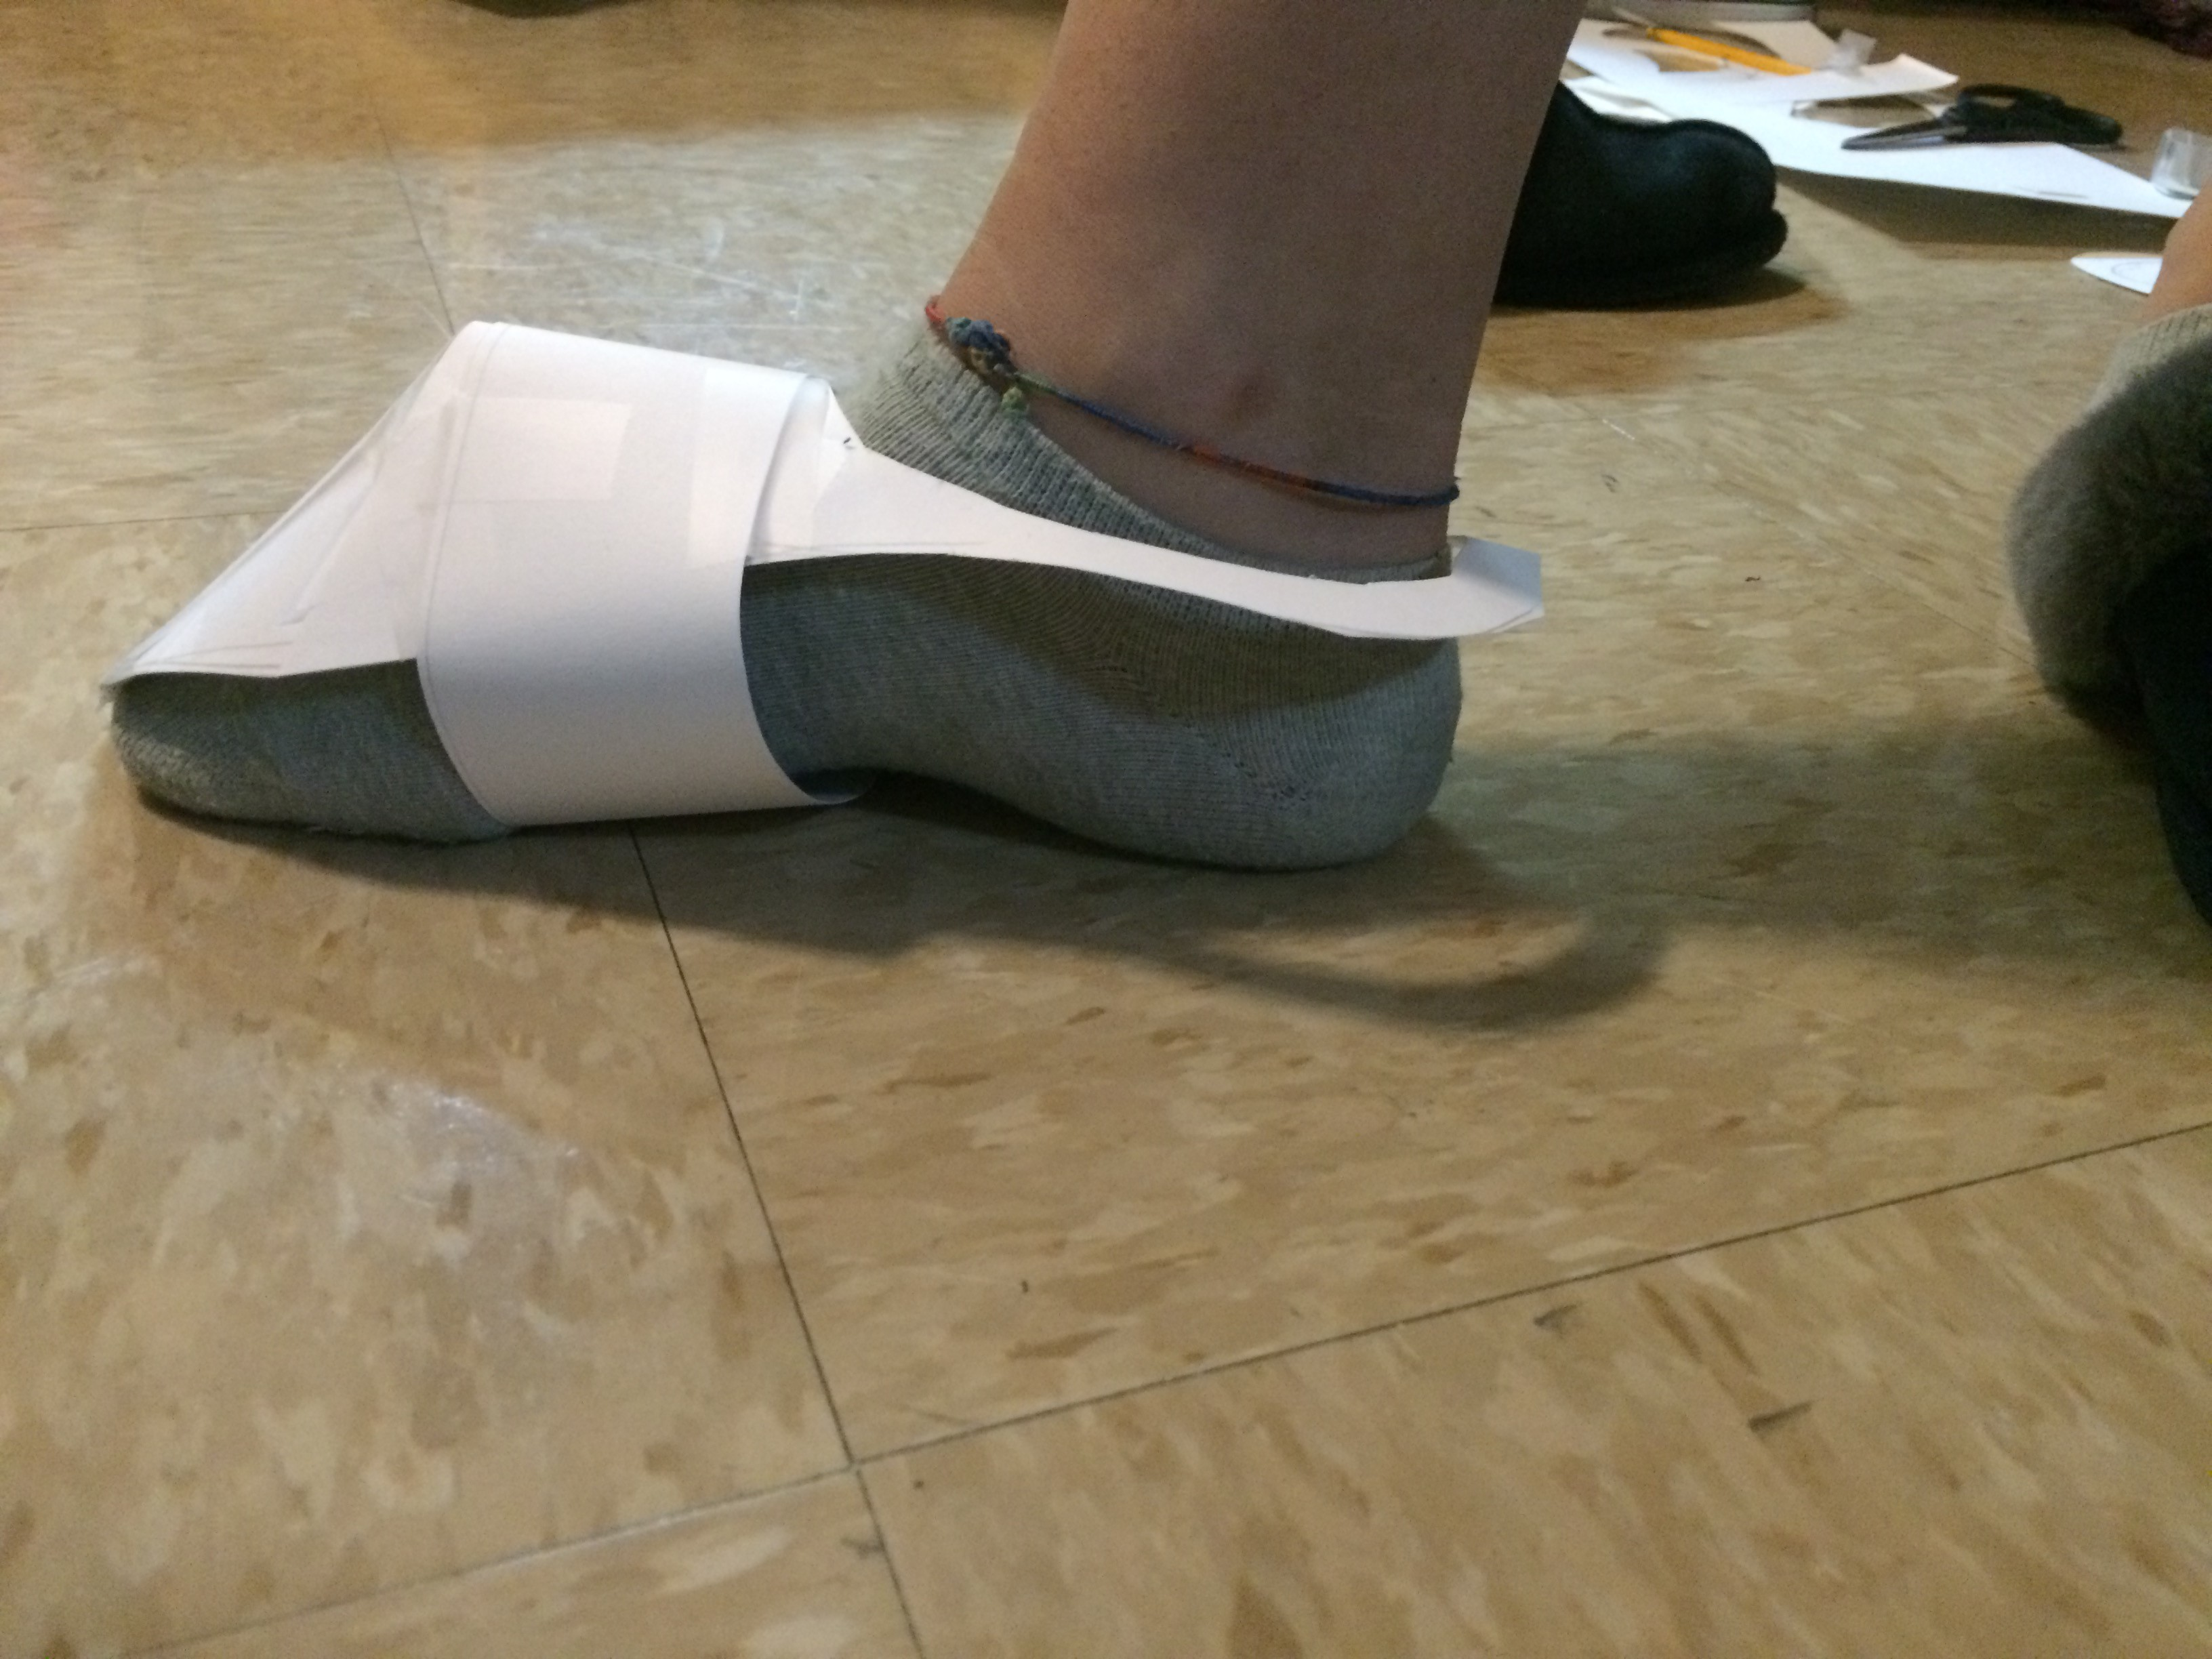 Shoe (Prototype, Progress, and Final)